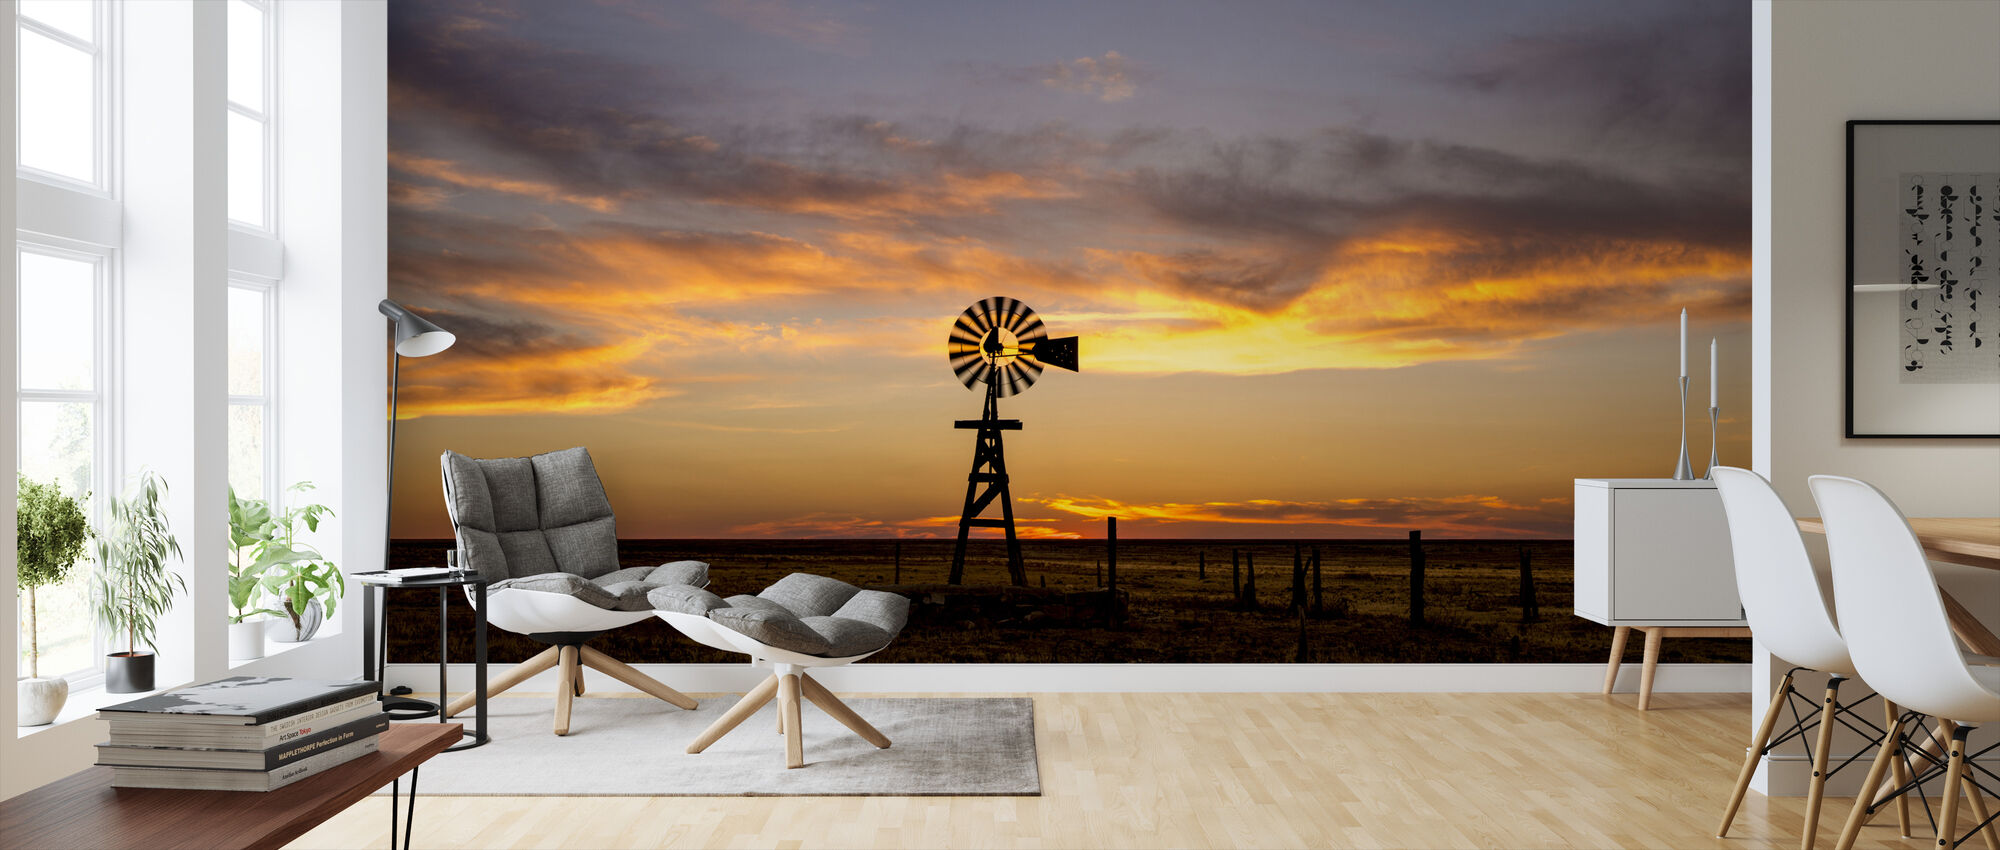 Plains Windmill - Wallpaper - Living Room